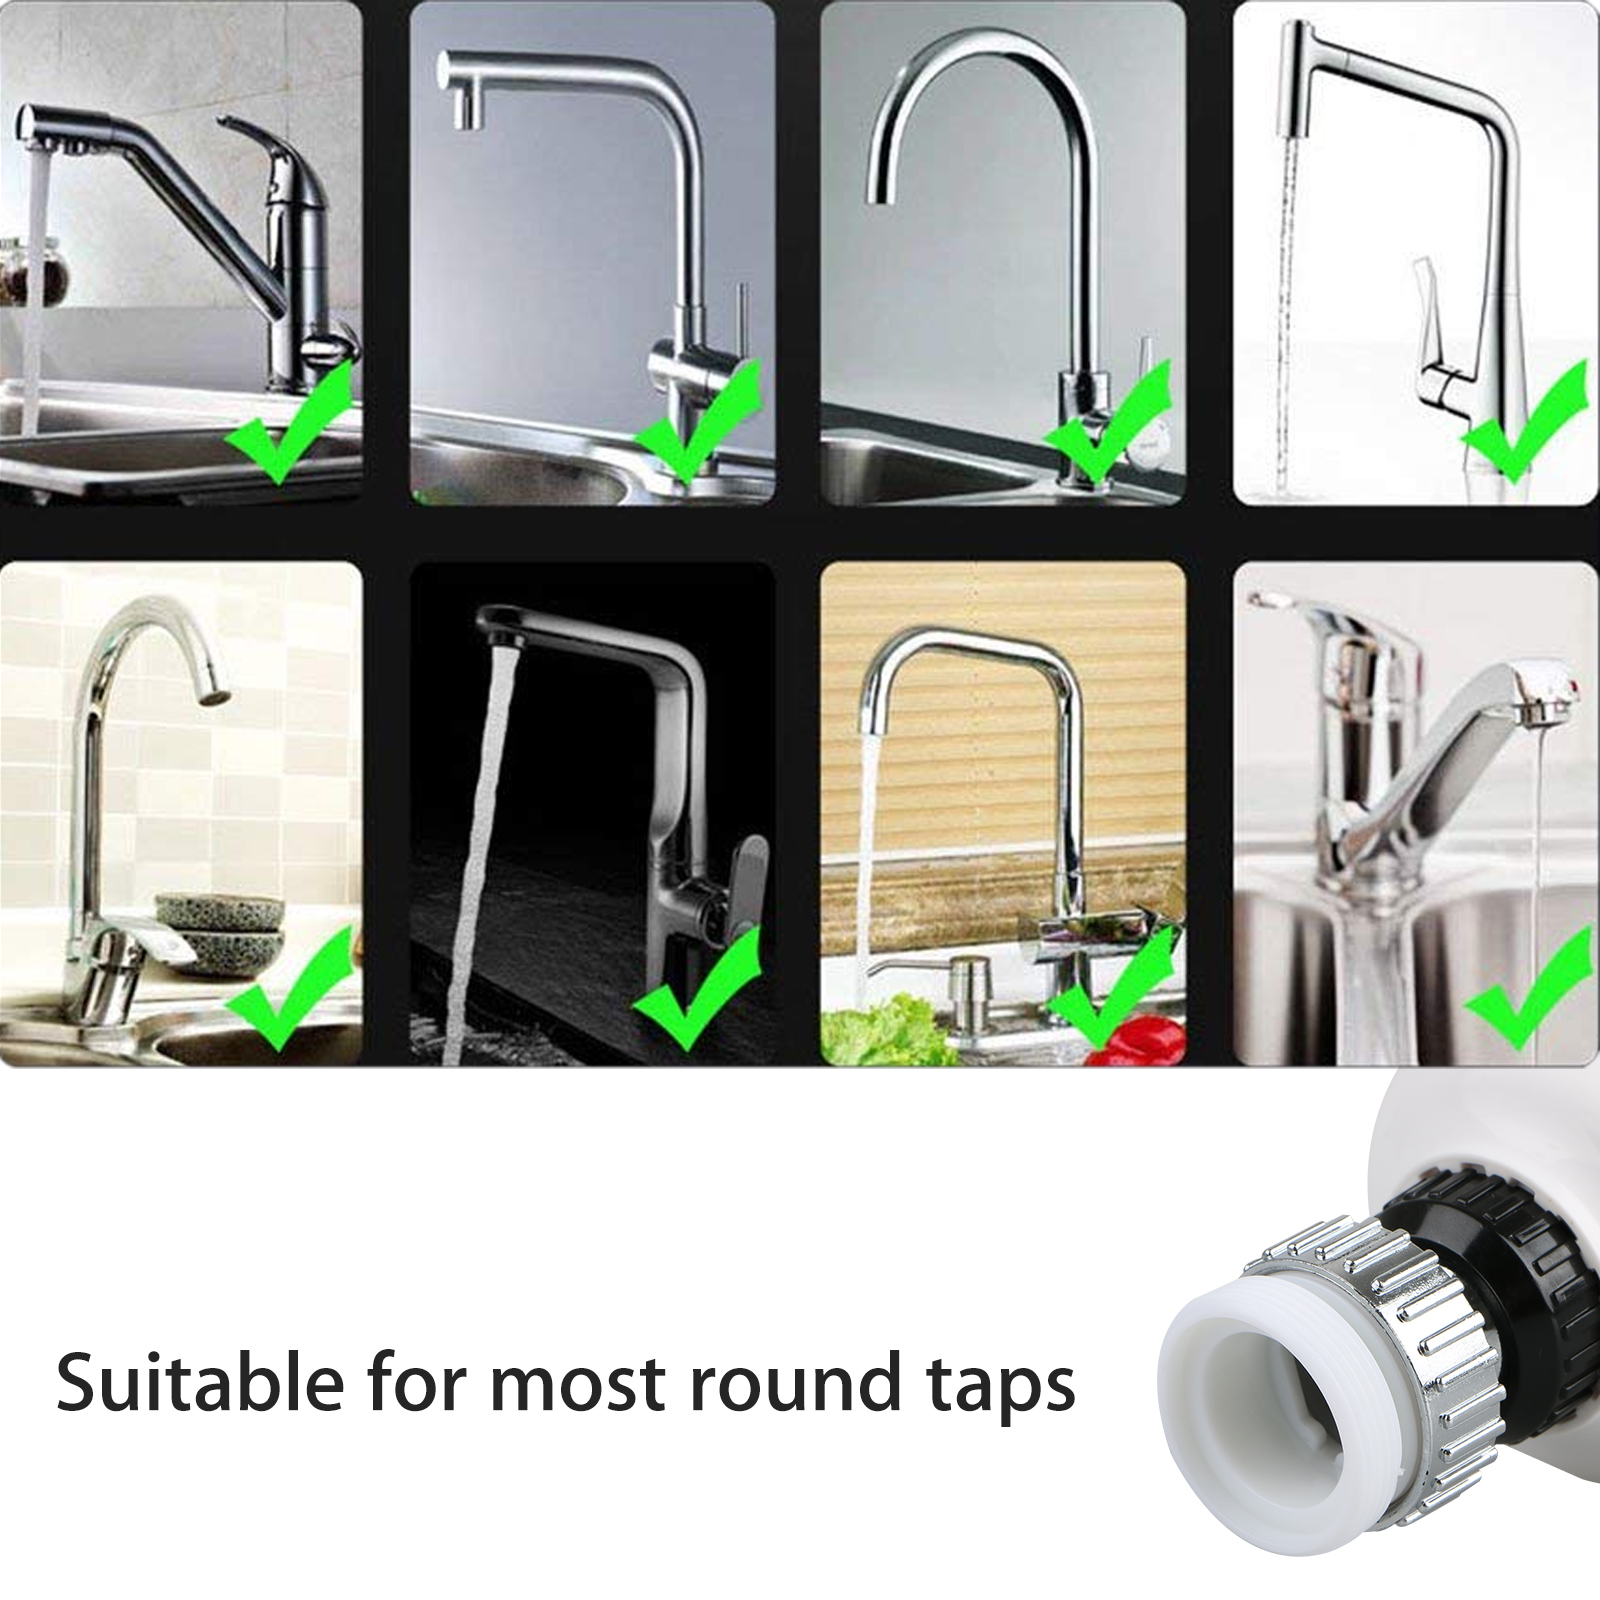 Kitchen-Sink-Faucet-Spray-Head-360-Swivel-Pull-Out-Spray-Head-Replacement-Part thumbnail 6